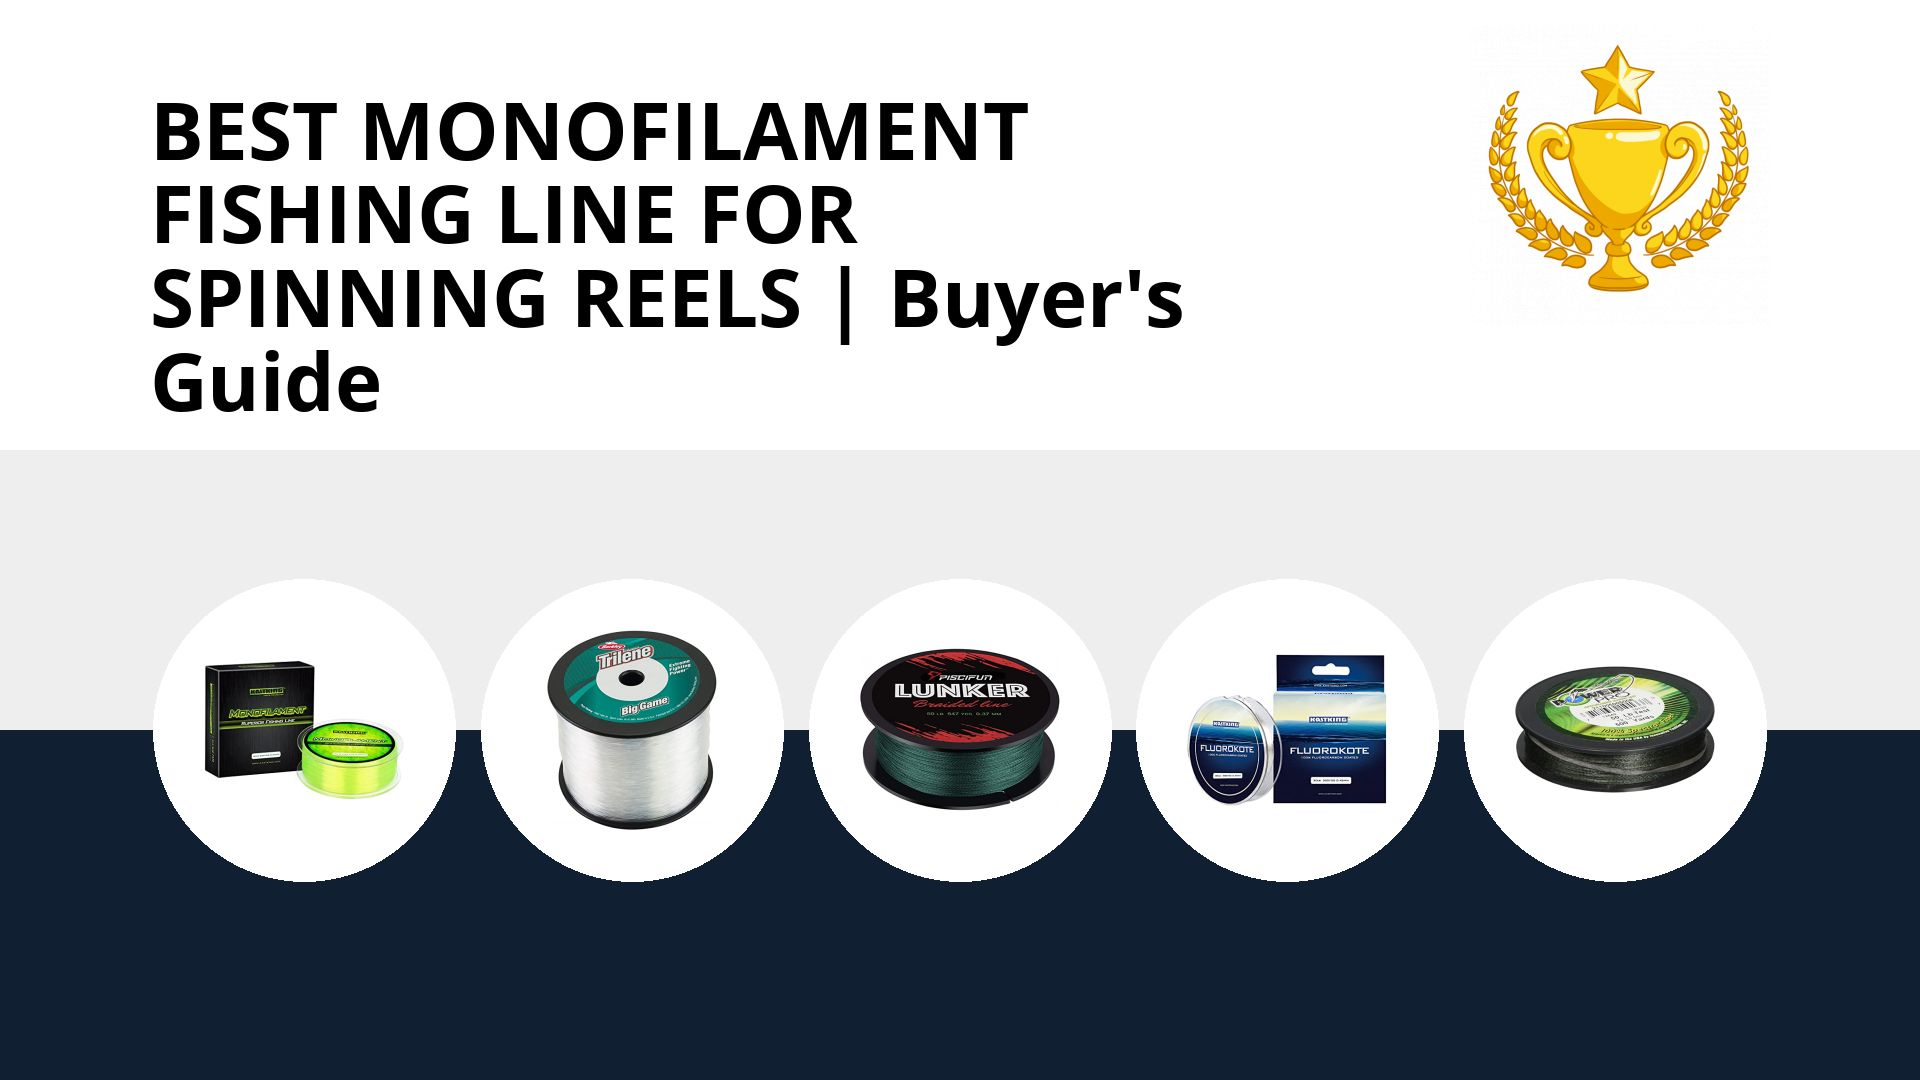 Best Monofilament Fishing Line For Spinning Reels: image